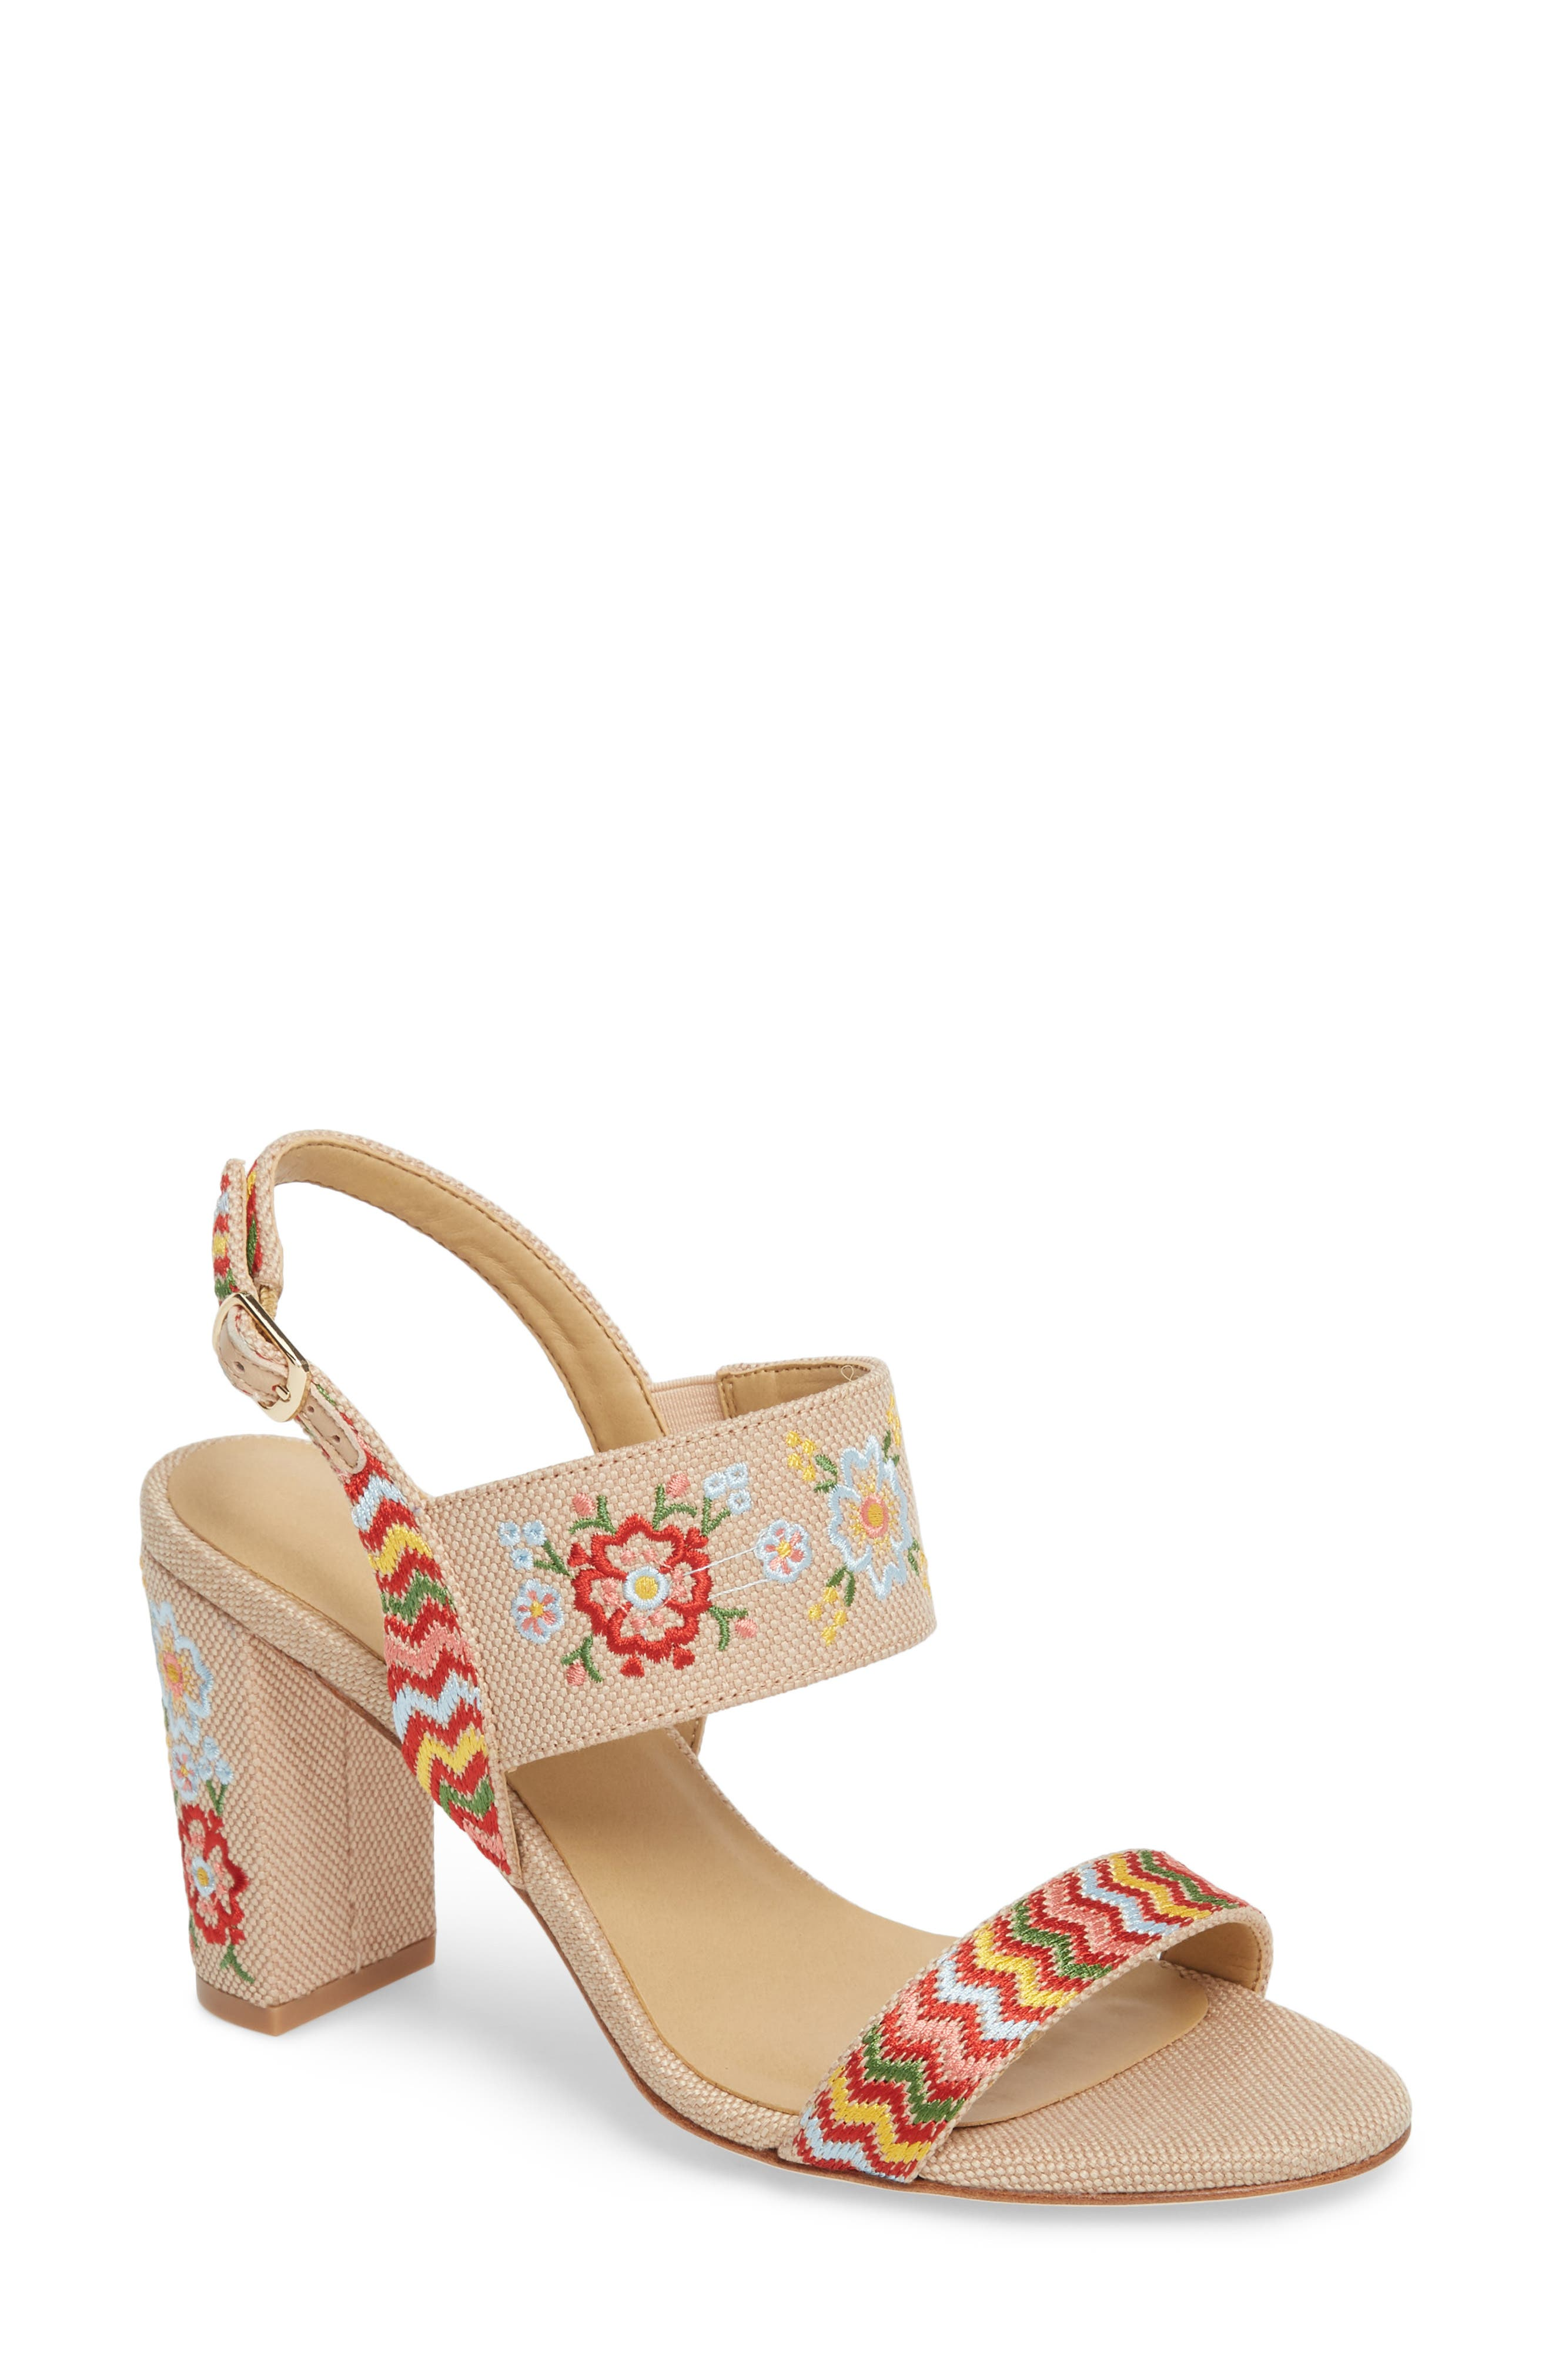 Biene Slingback Sandal,                             Main thumbnail 1, color,                             Natural Linen Fabric